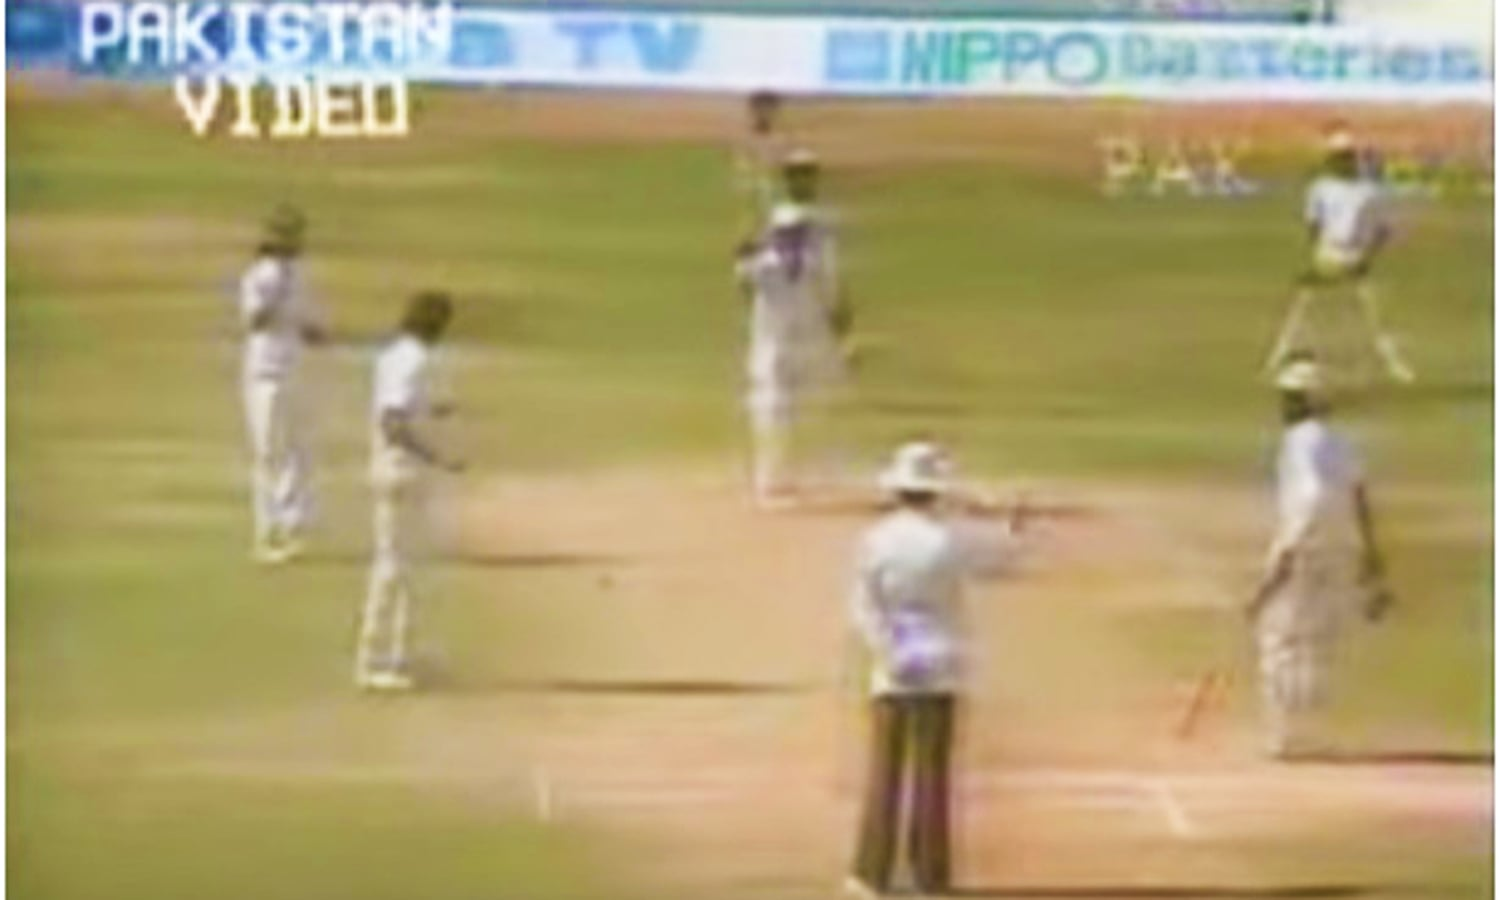 A comedy of errors: The umpire gives Qasim out LBW (the bowler Kapil Dev did not appeal). On Qasim's animated protests, the umpire quickly changed the decision. Photo: Video Grab.